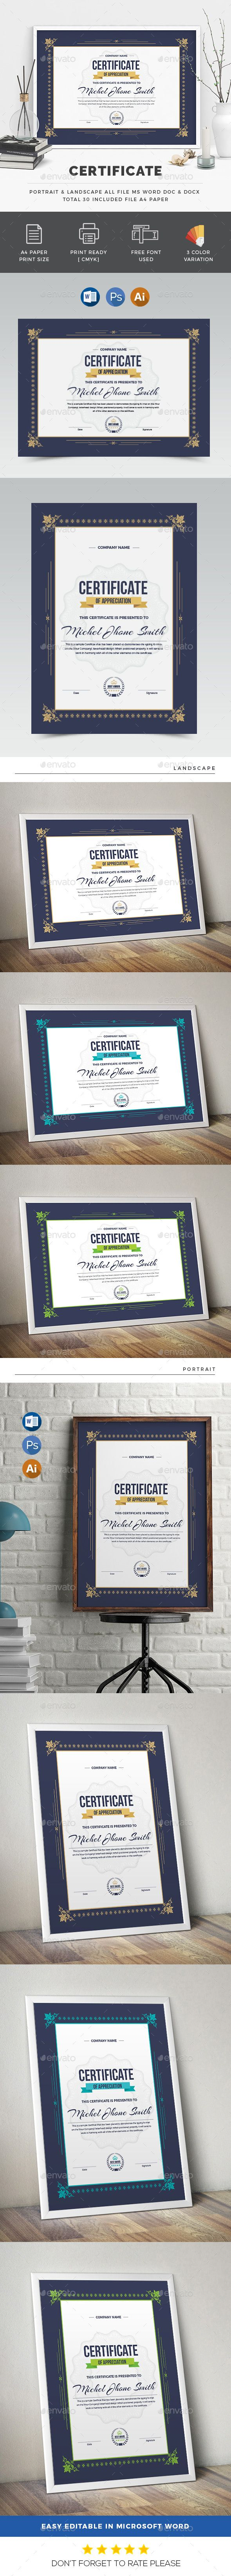 #Certificate - Certificates Stationery Download here:  https://graphicriver.net/item/certificate/20021117?ref=alena994